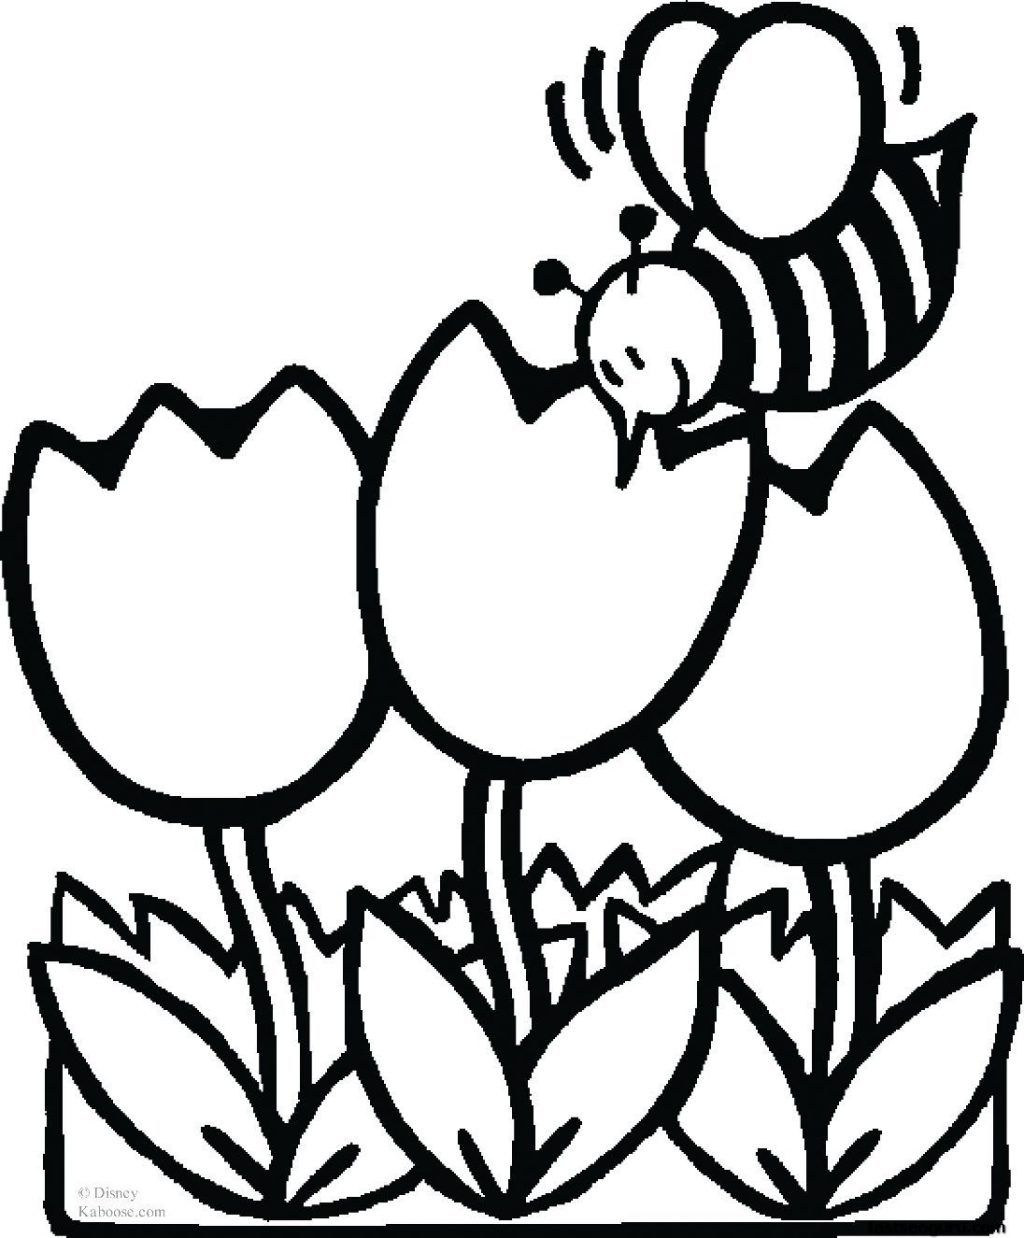 25 Creative Photo Of Spring Flowers Coloring Pages Albanysinsanity Com Spring Coloring Pages Bee Coloring Pages Flower Coloring Pages